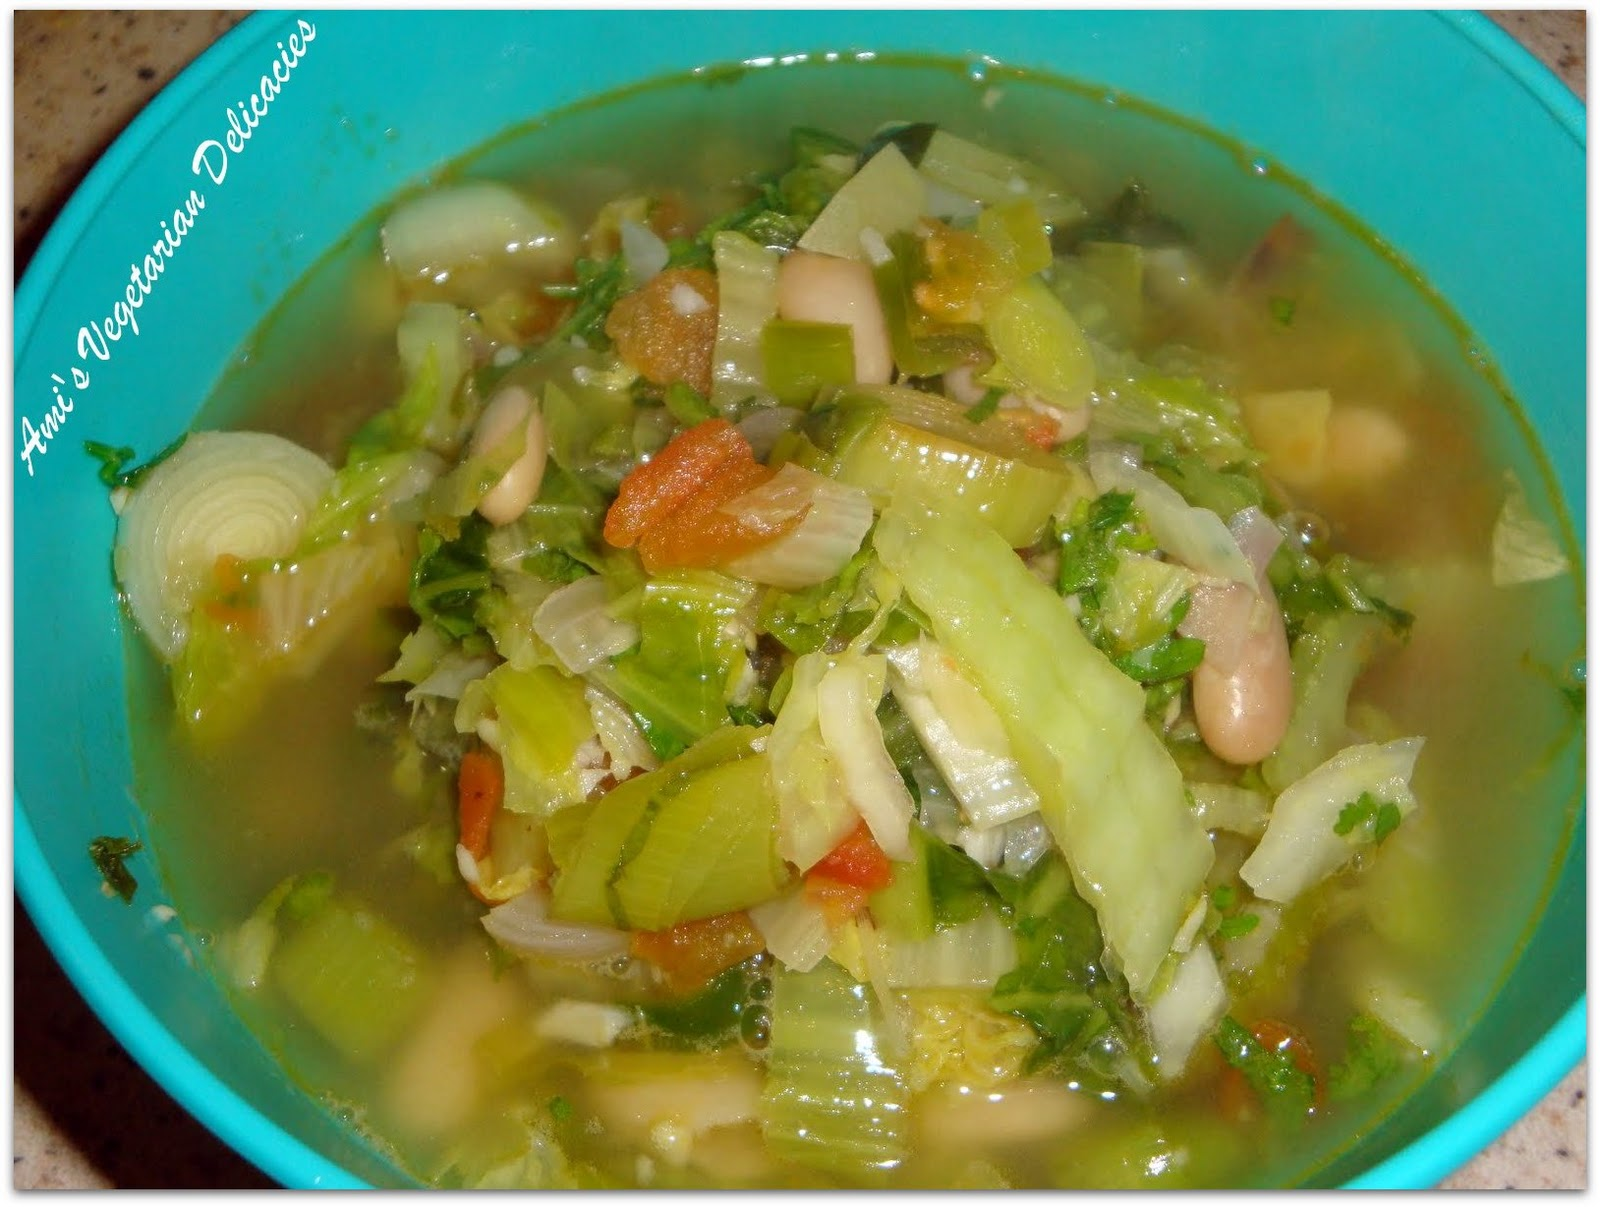 ... soup from Tuscany. This one uses cannellini beans, leeks, cabbage and